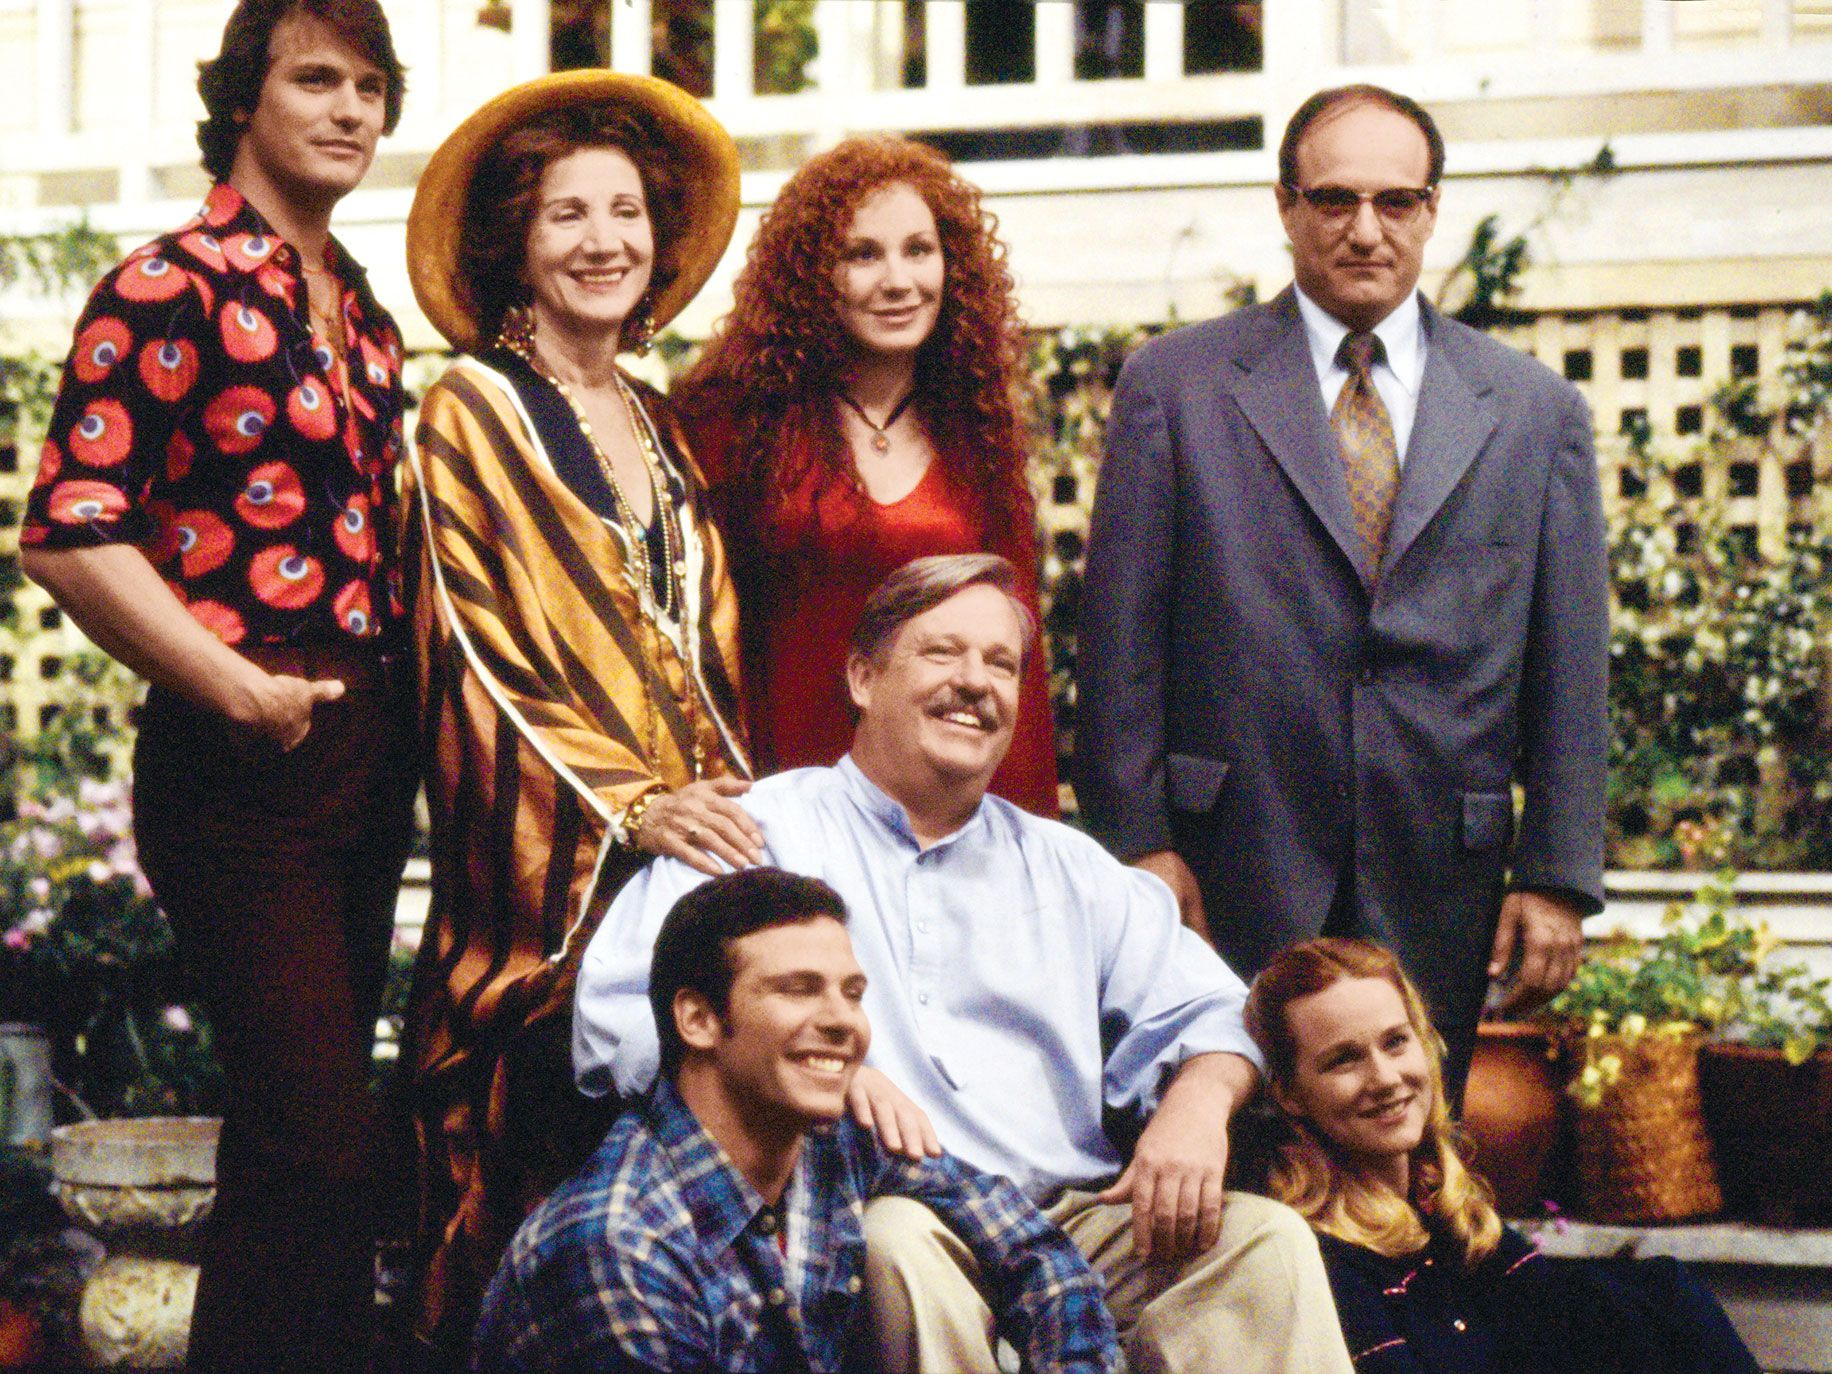 Maupin (center) with the cast of the original Tales of the City miniseries, which aired in 1994 on PBS.